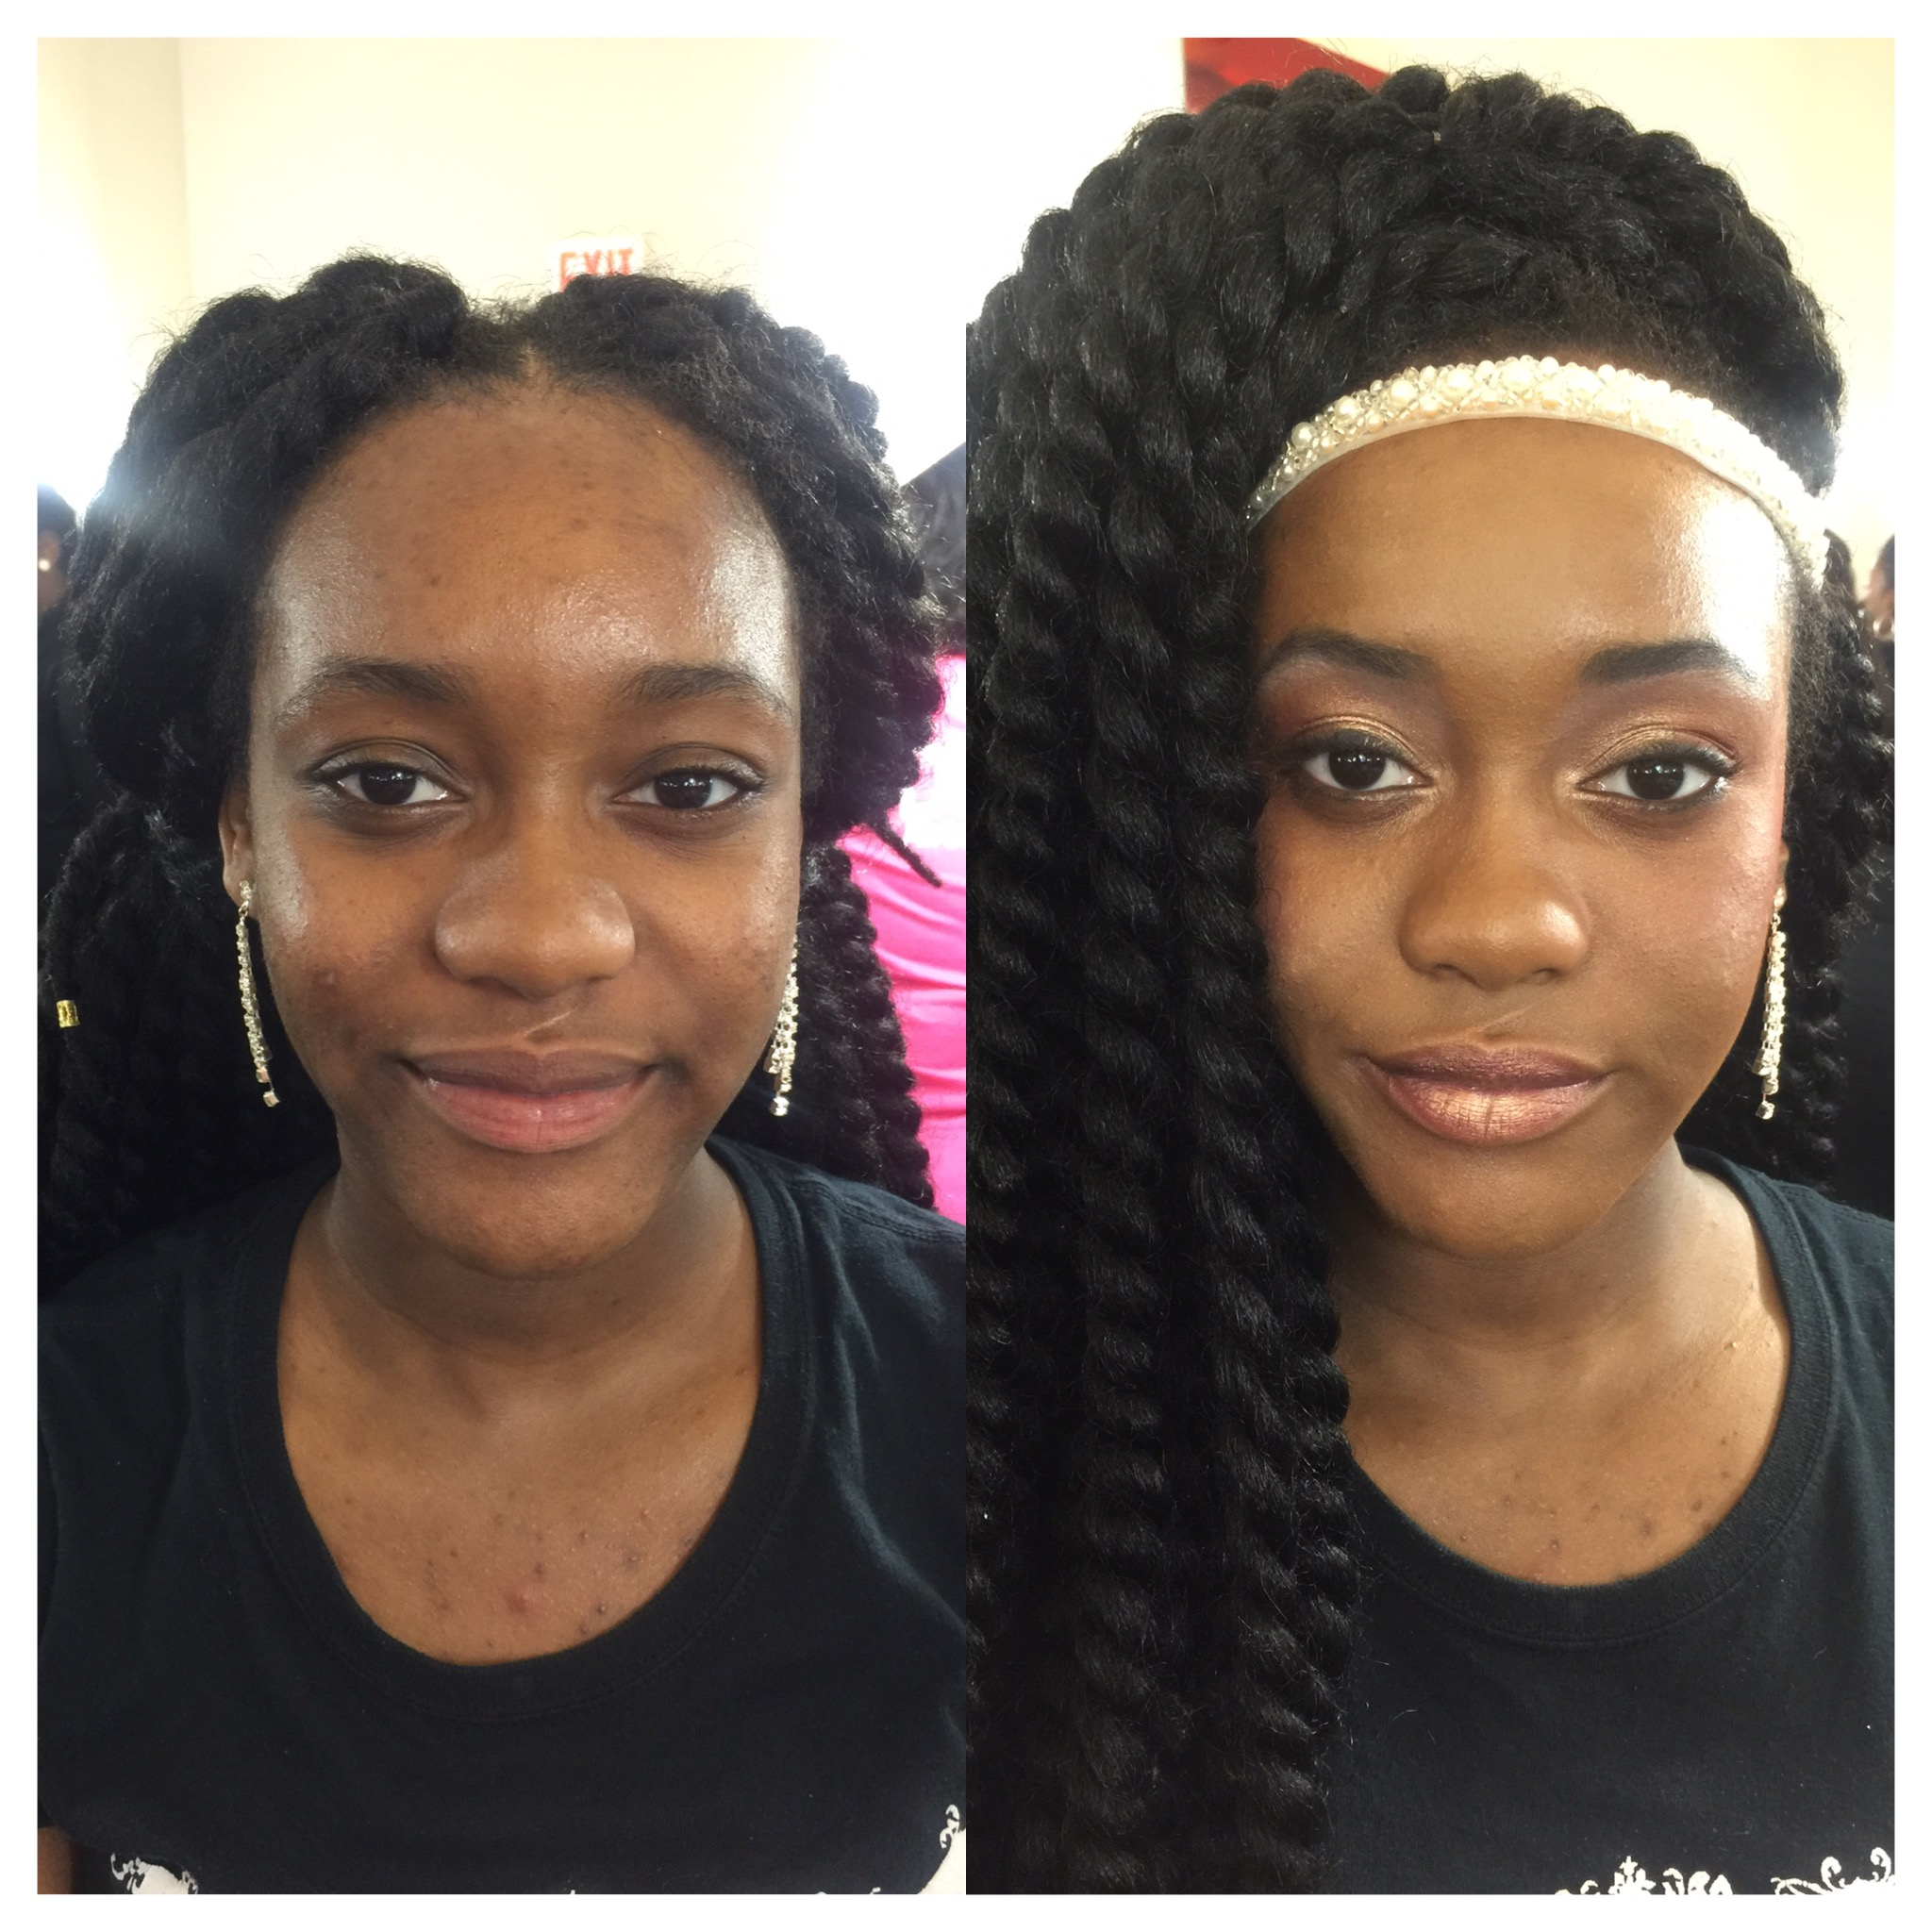 #beforeandafter the Dinair Paramedical foundation is amazing for coverage!